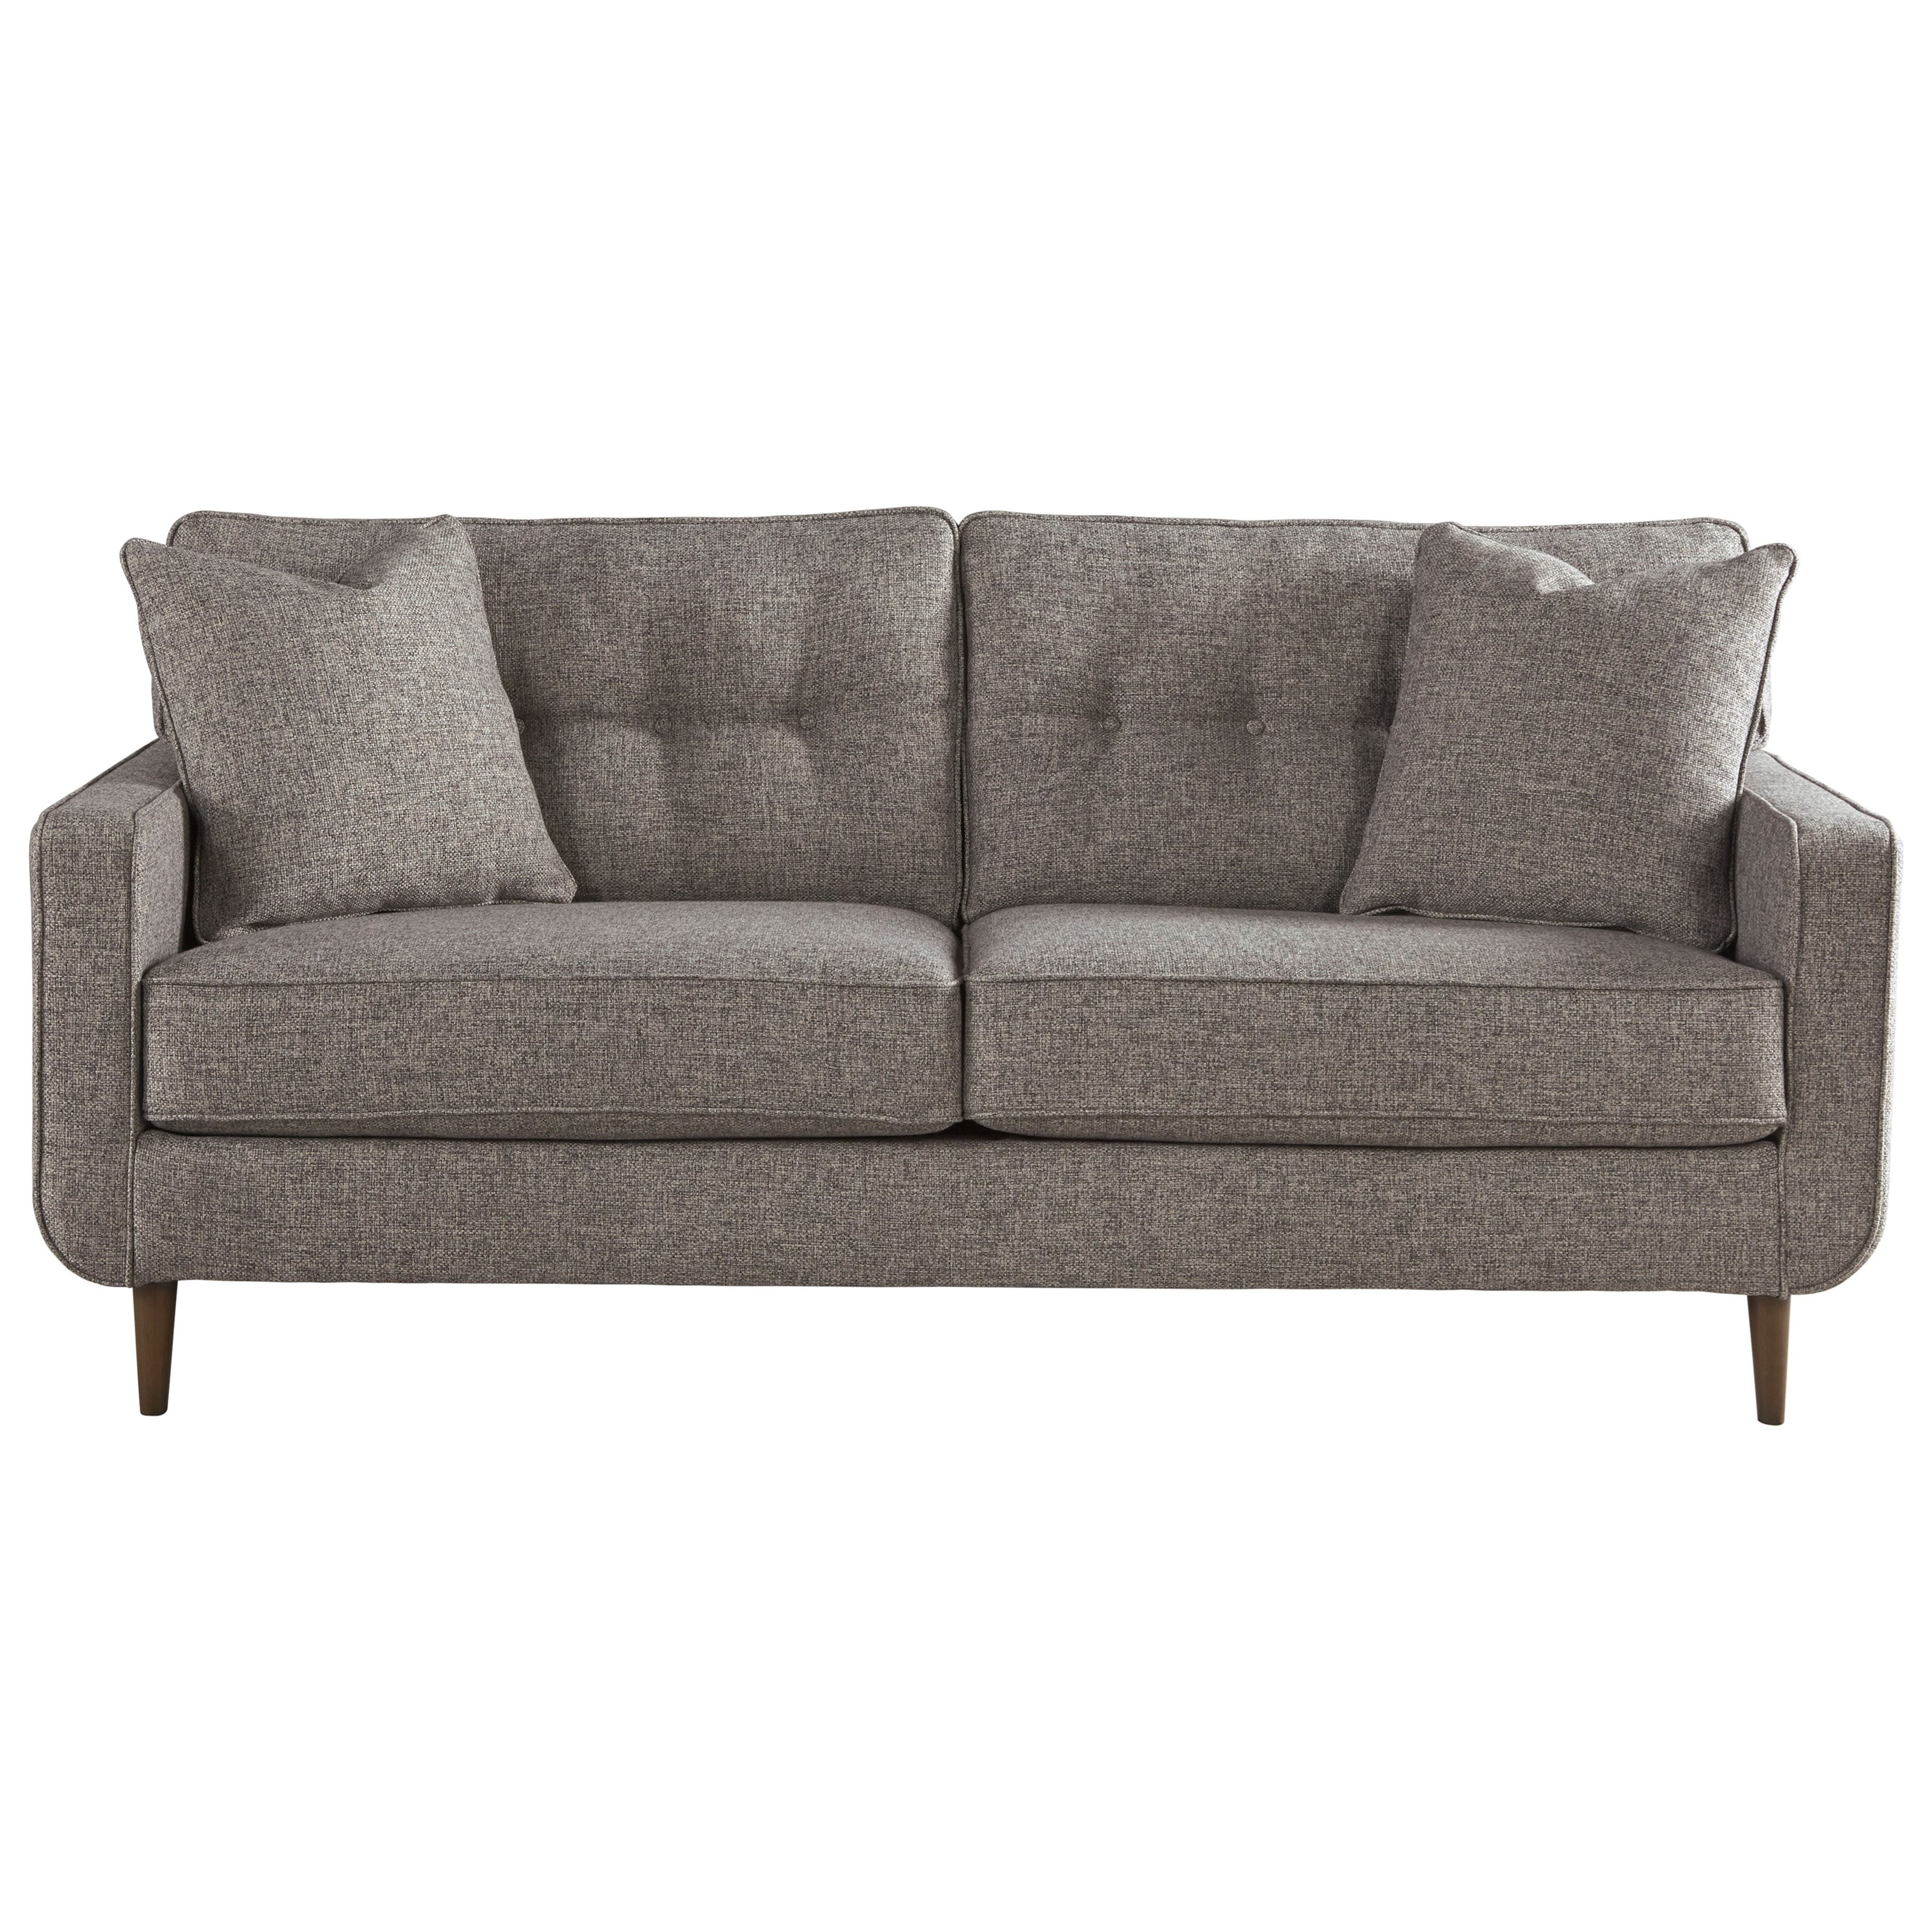 piece sectionals rcwilley jsp mid room furniture sofa store sectional modern century rc kelsey living fabric view chaise stone willey